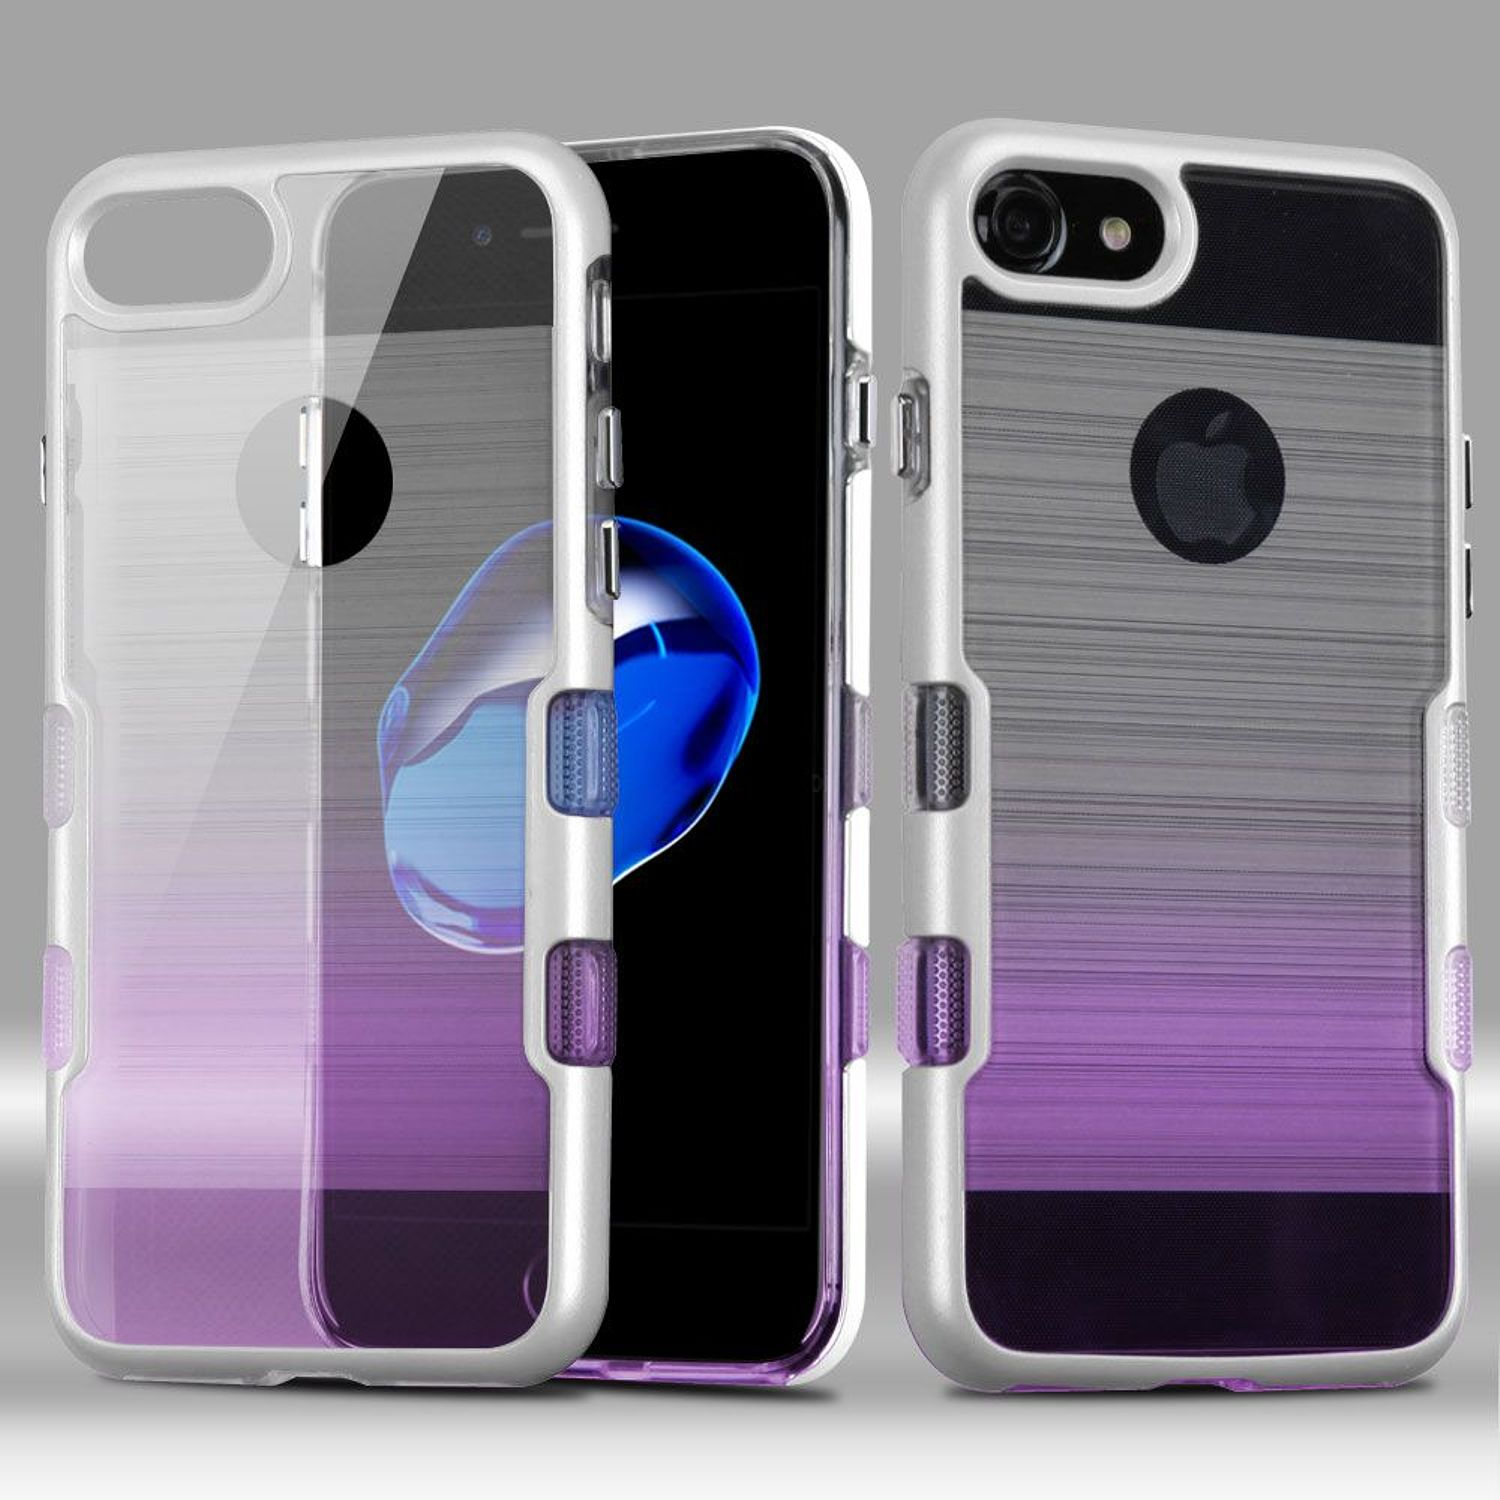 Insten Tuff Dual Layer [Shock Absorbing] Hybrid Brushed Hard Plastic/Soft TPU Rubber Case Cover For Apple iPhone 8 / iPhone 7, Purple/Silver